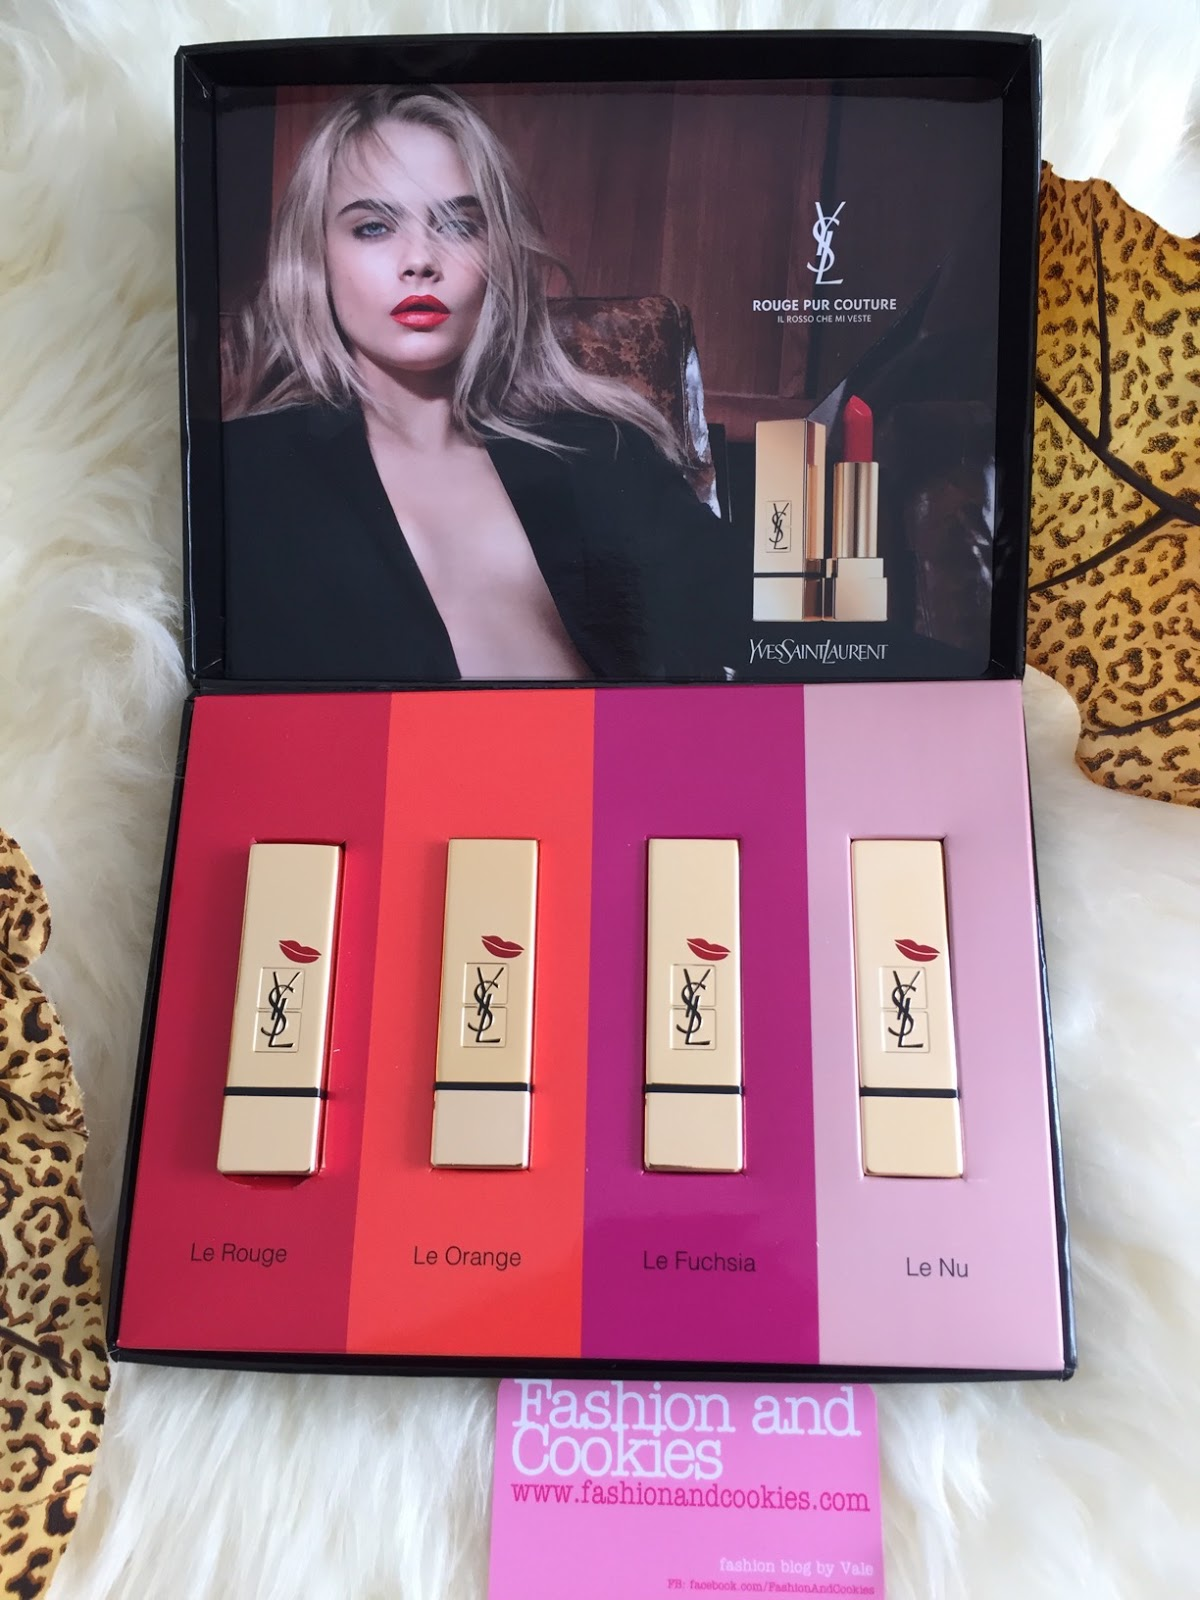 Yves Saint Laurent Rouge Pur Couture Kiss & Love Limited Edition on Fashion and Cookies fashion and beauty blog, beauty blogger